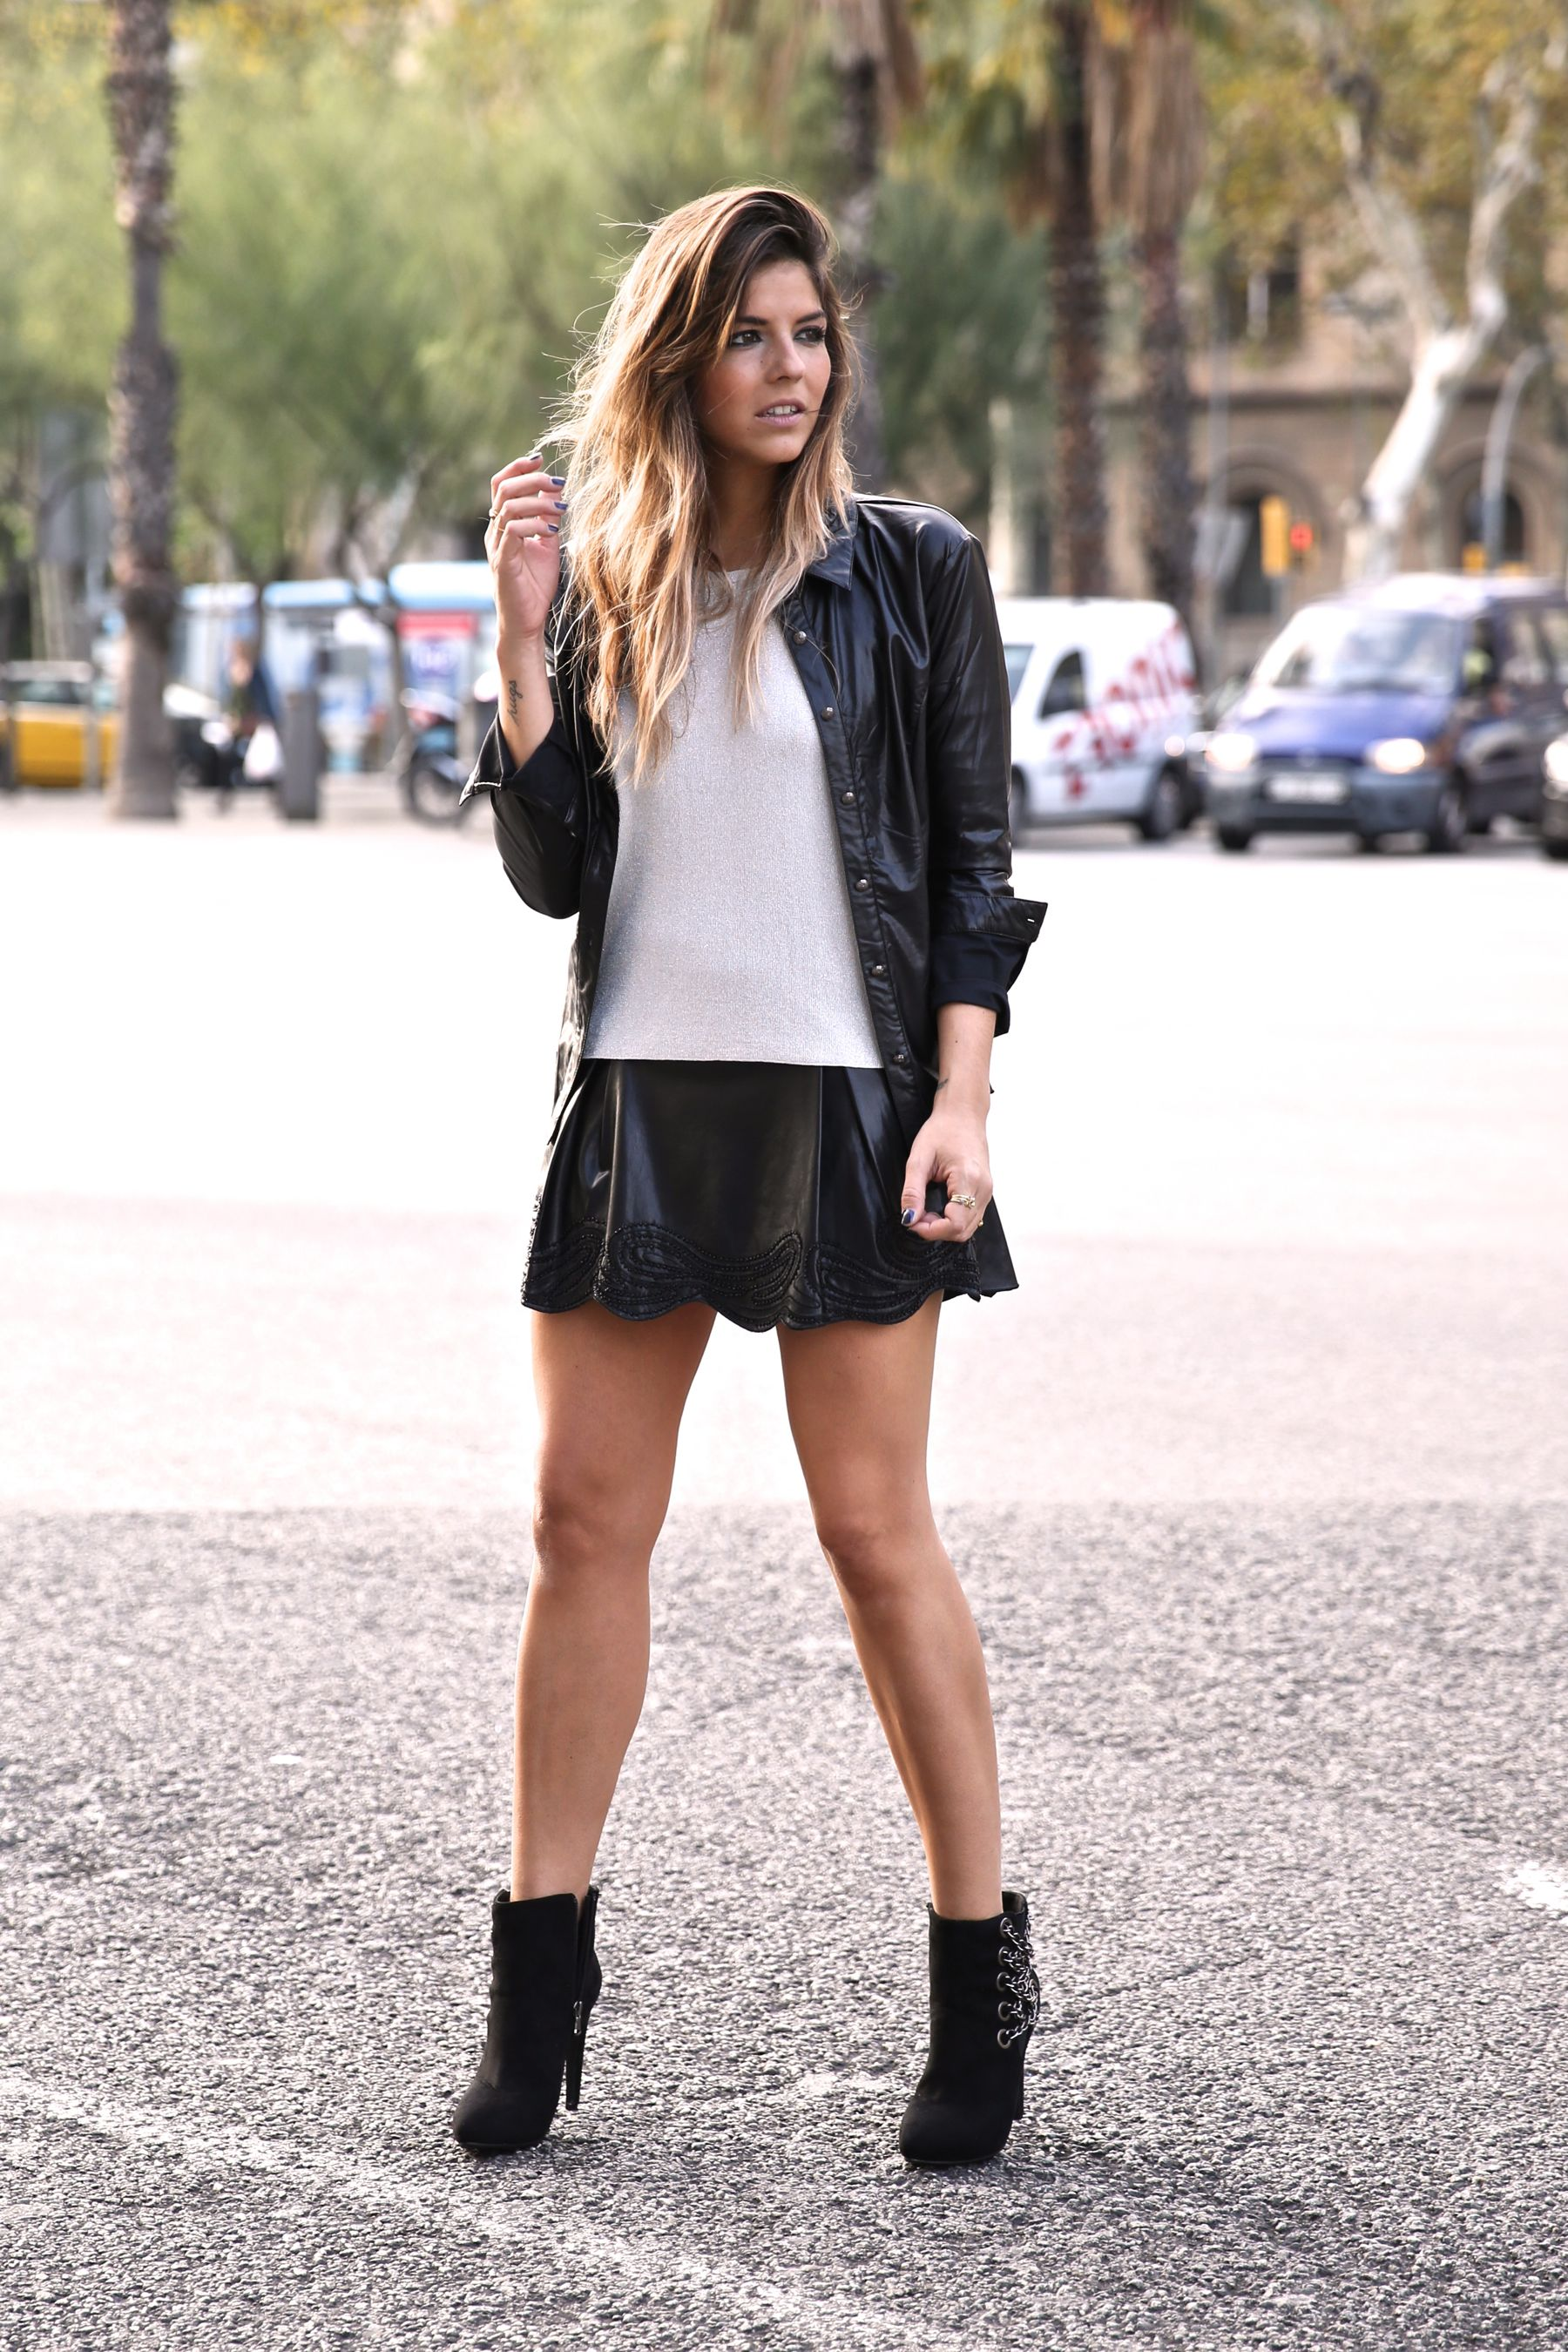 Chic rocky look, leather and chains boots